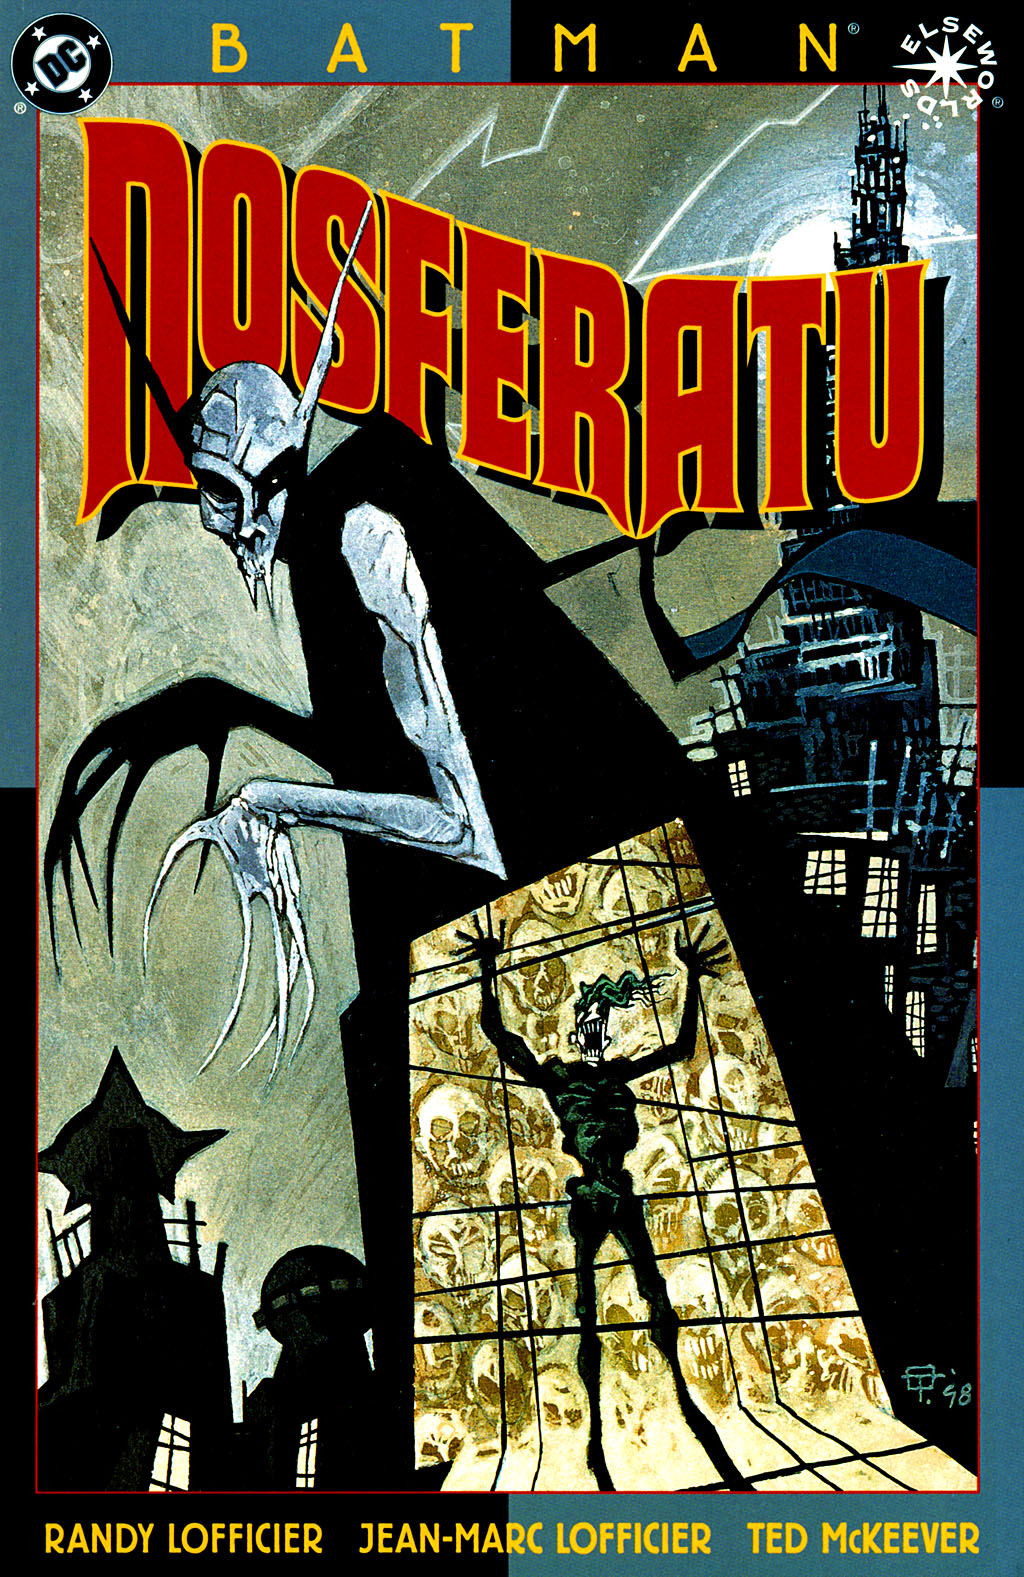 Batman: Nosferatu